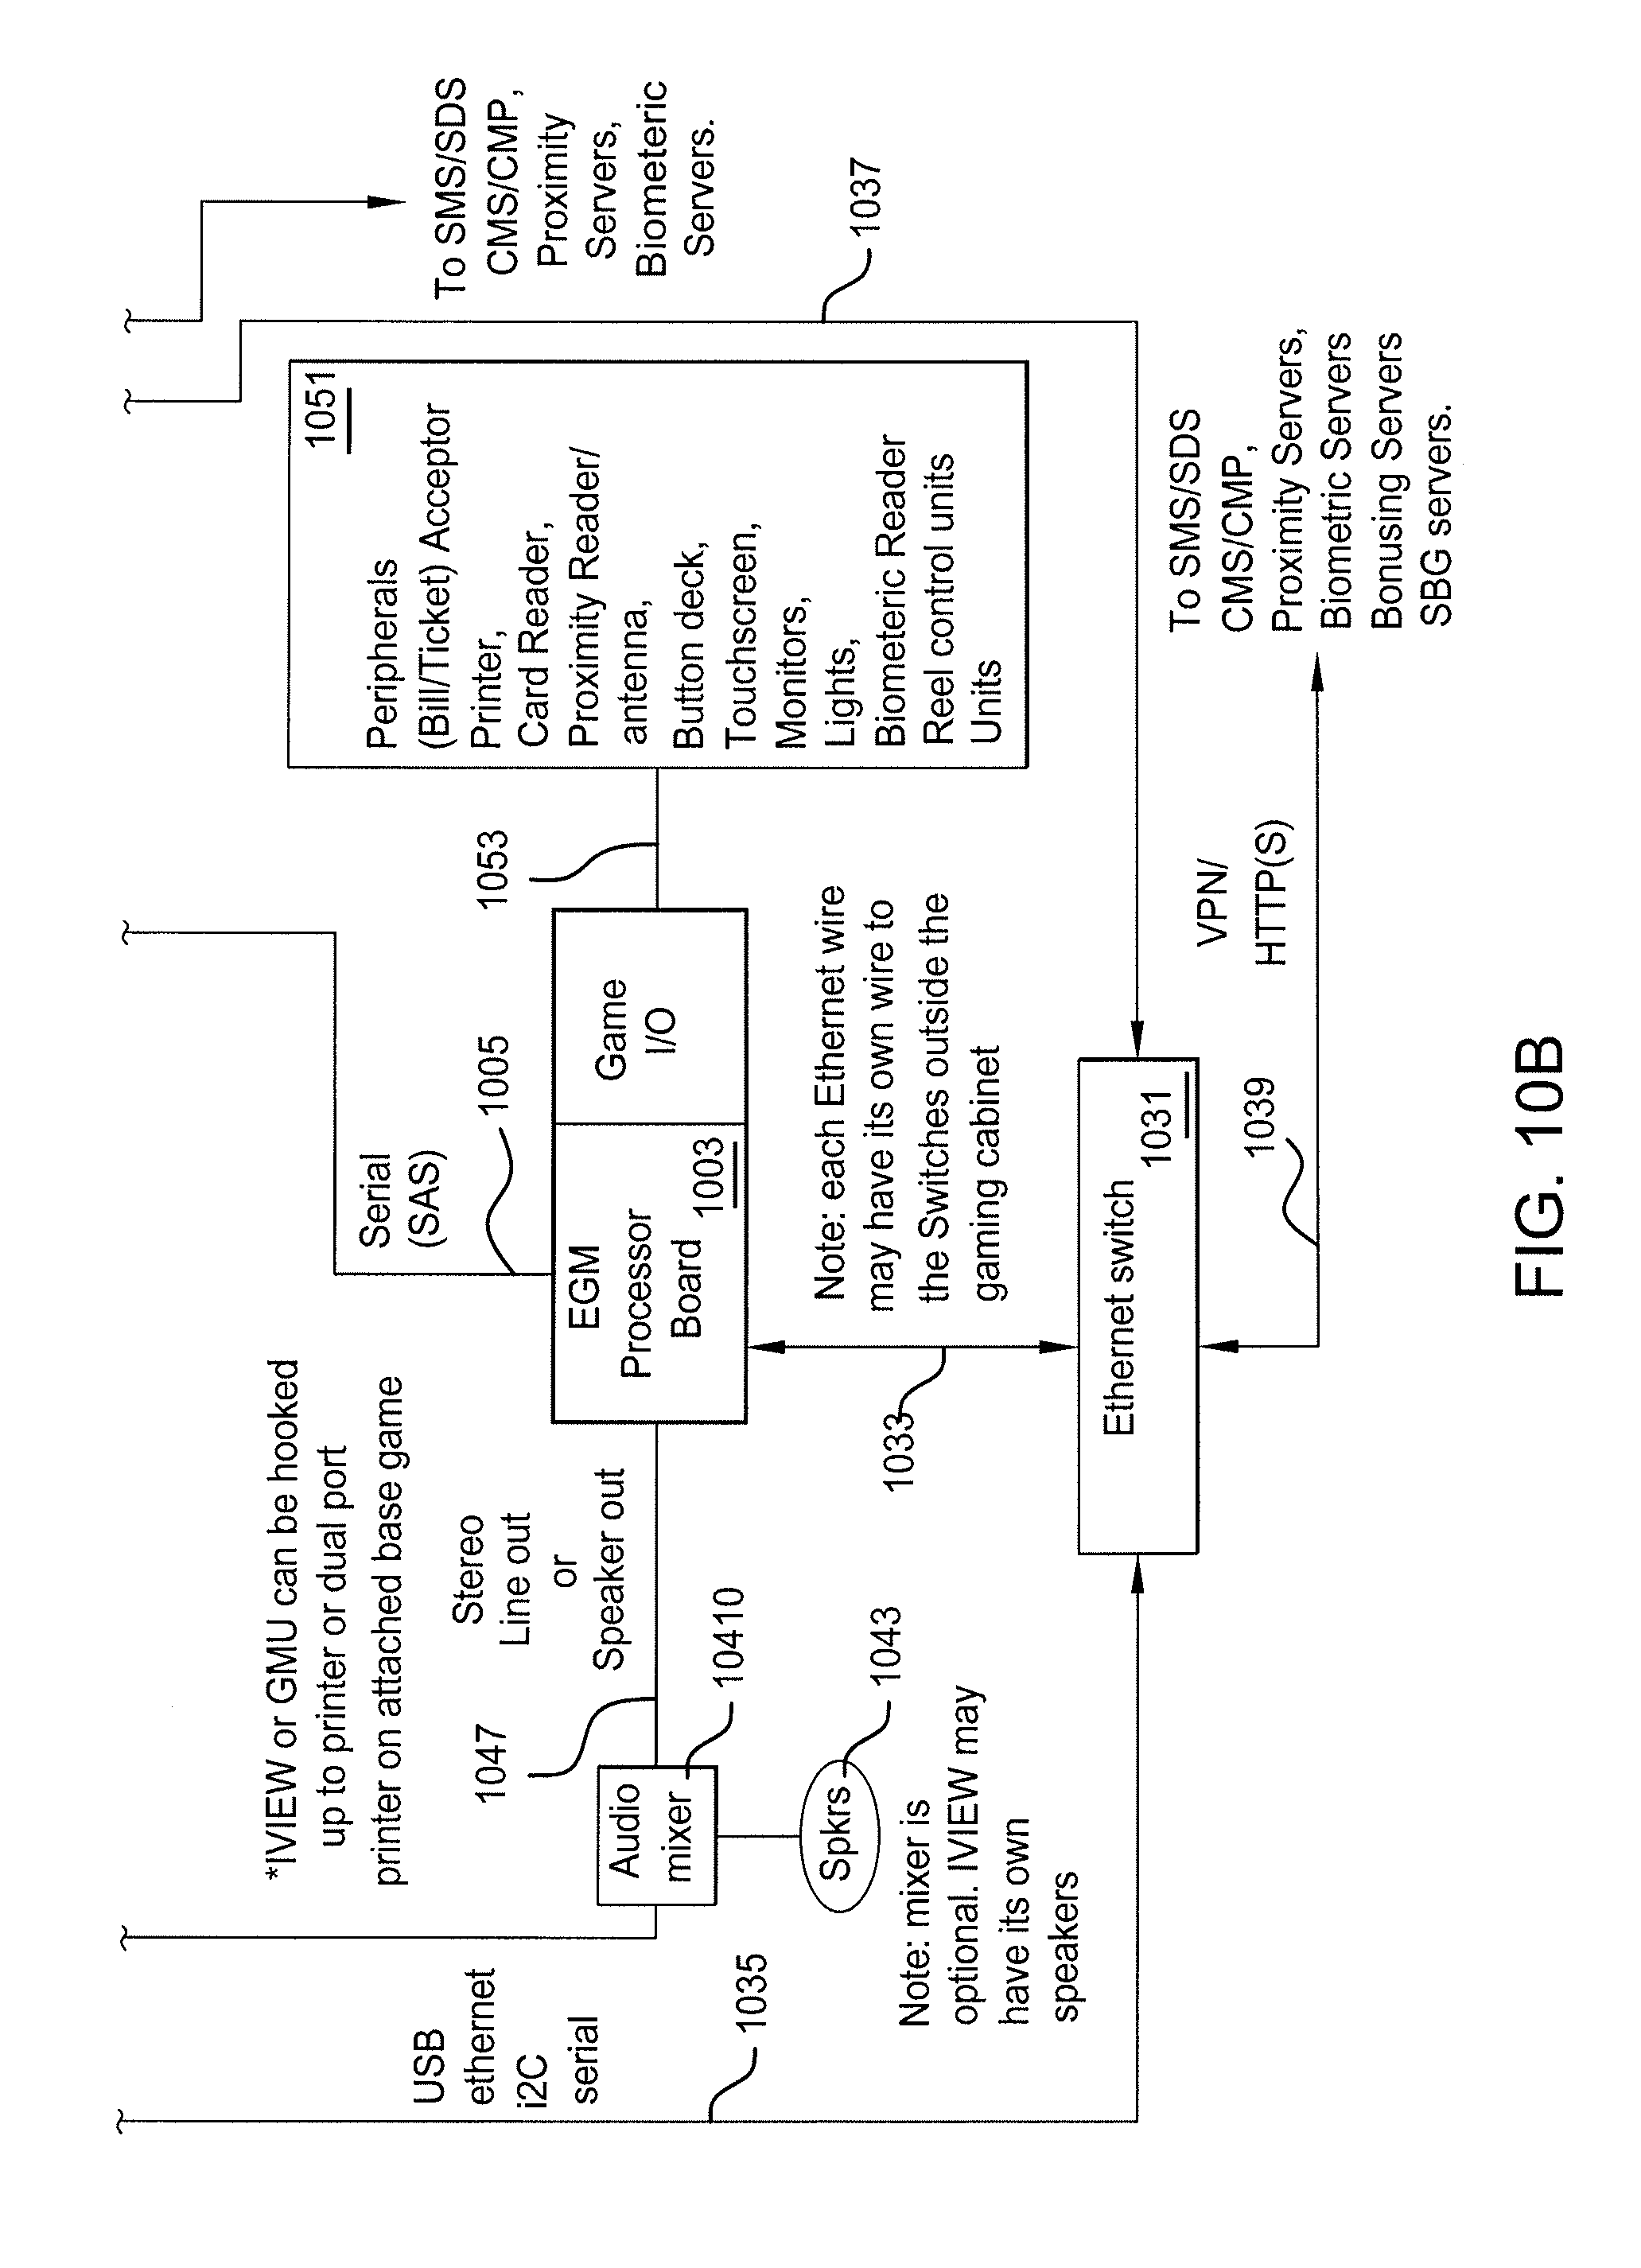 Patent Us 9934647 B2 Fig2 It Has Been Attached An Image Of The Motherboard Block Diagram 0 Petitions